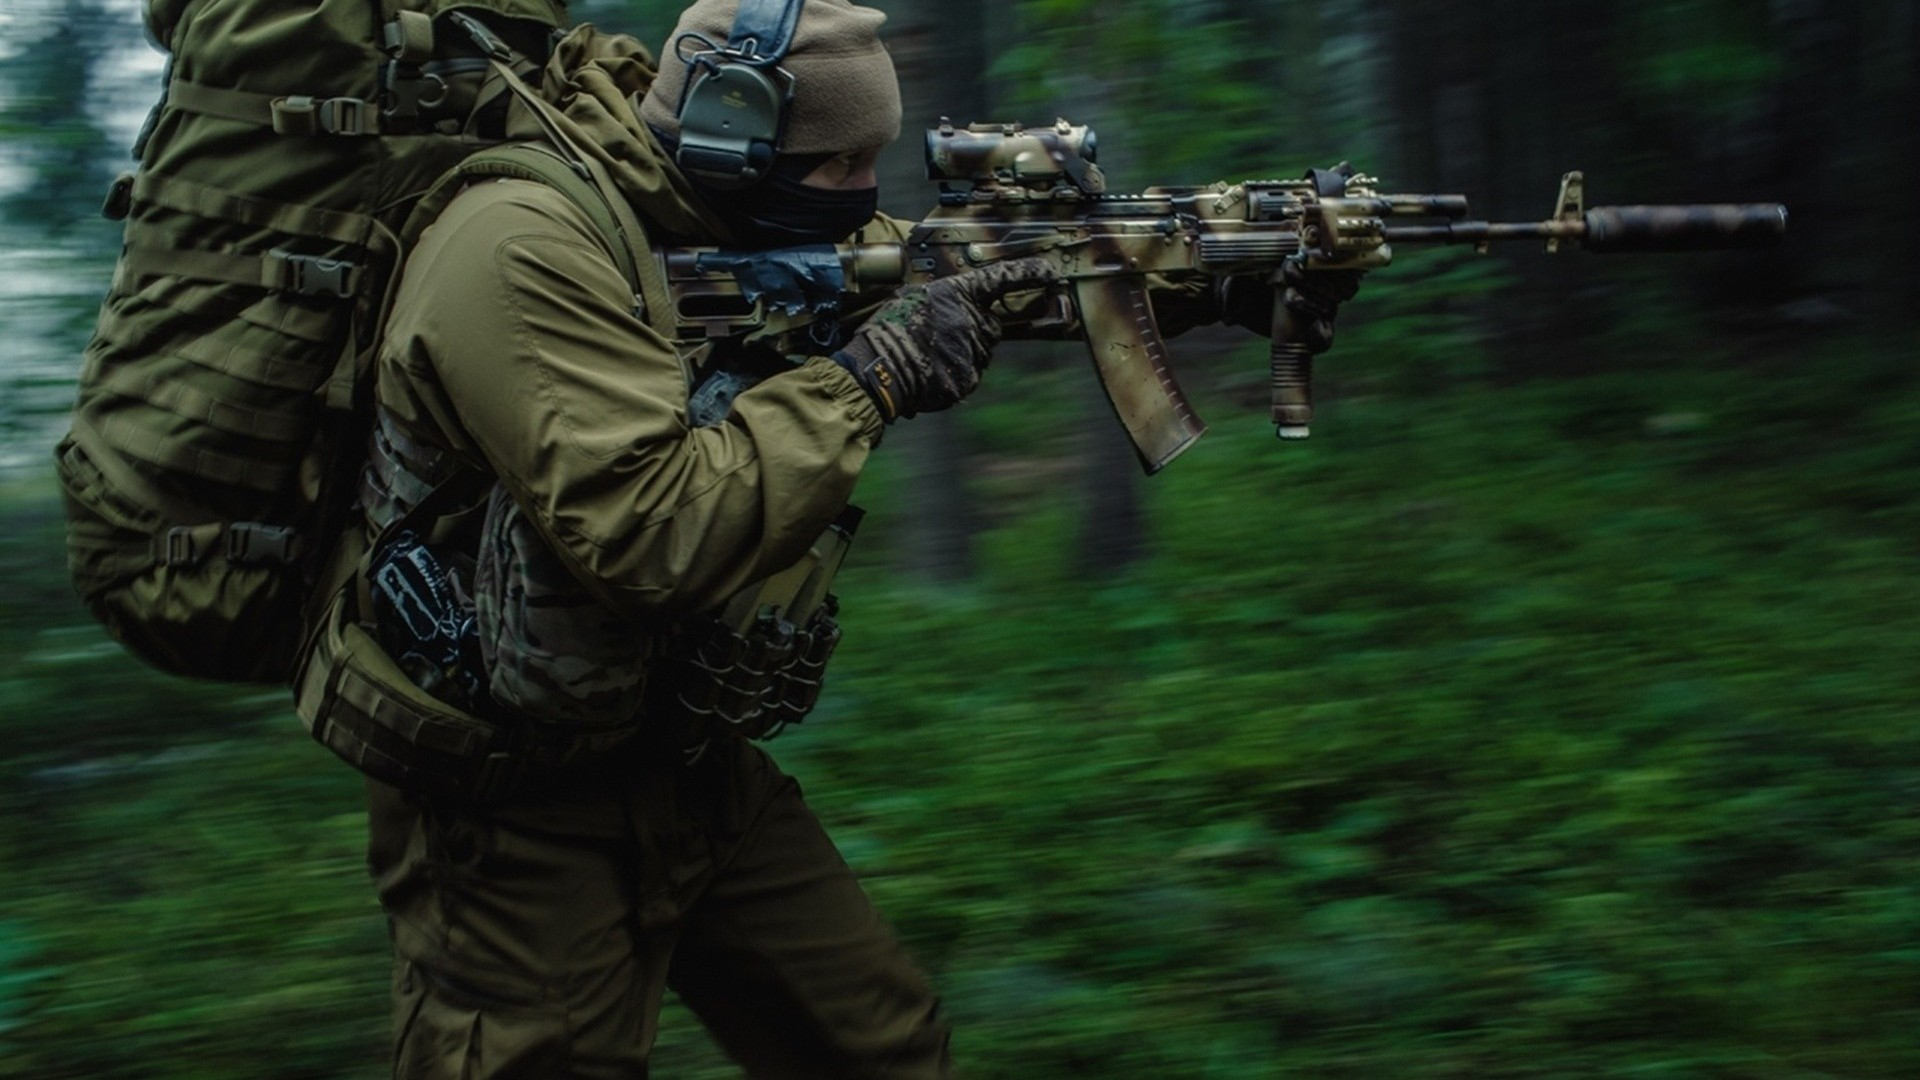 Russian Military Wallpapers (63+ Images